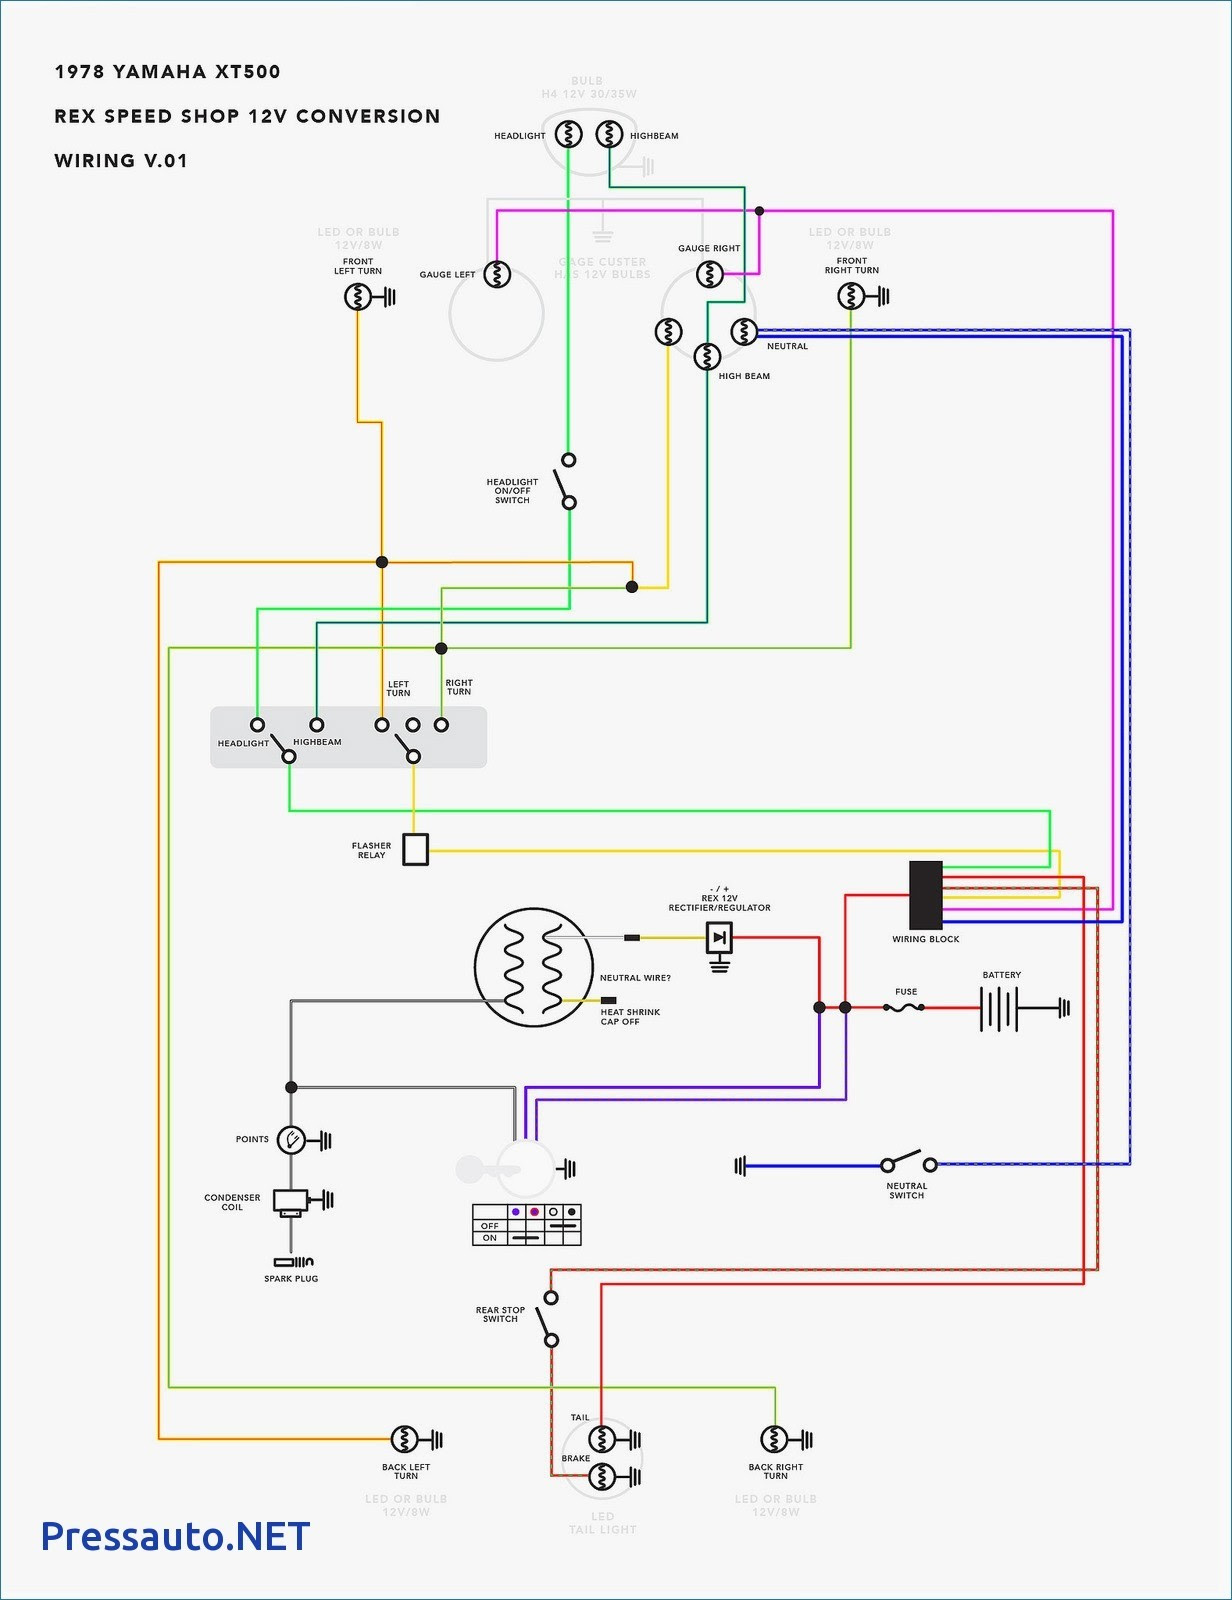 Diagram 4130 Ih Wiring Diagram Full Version Hd Quality Wiring Diagram Pvdiagramxcarli Unvulcanodilibri It